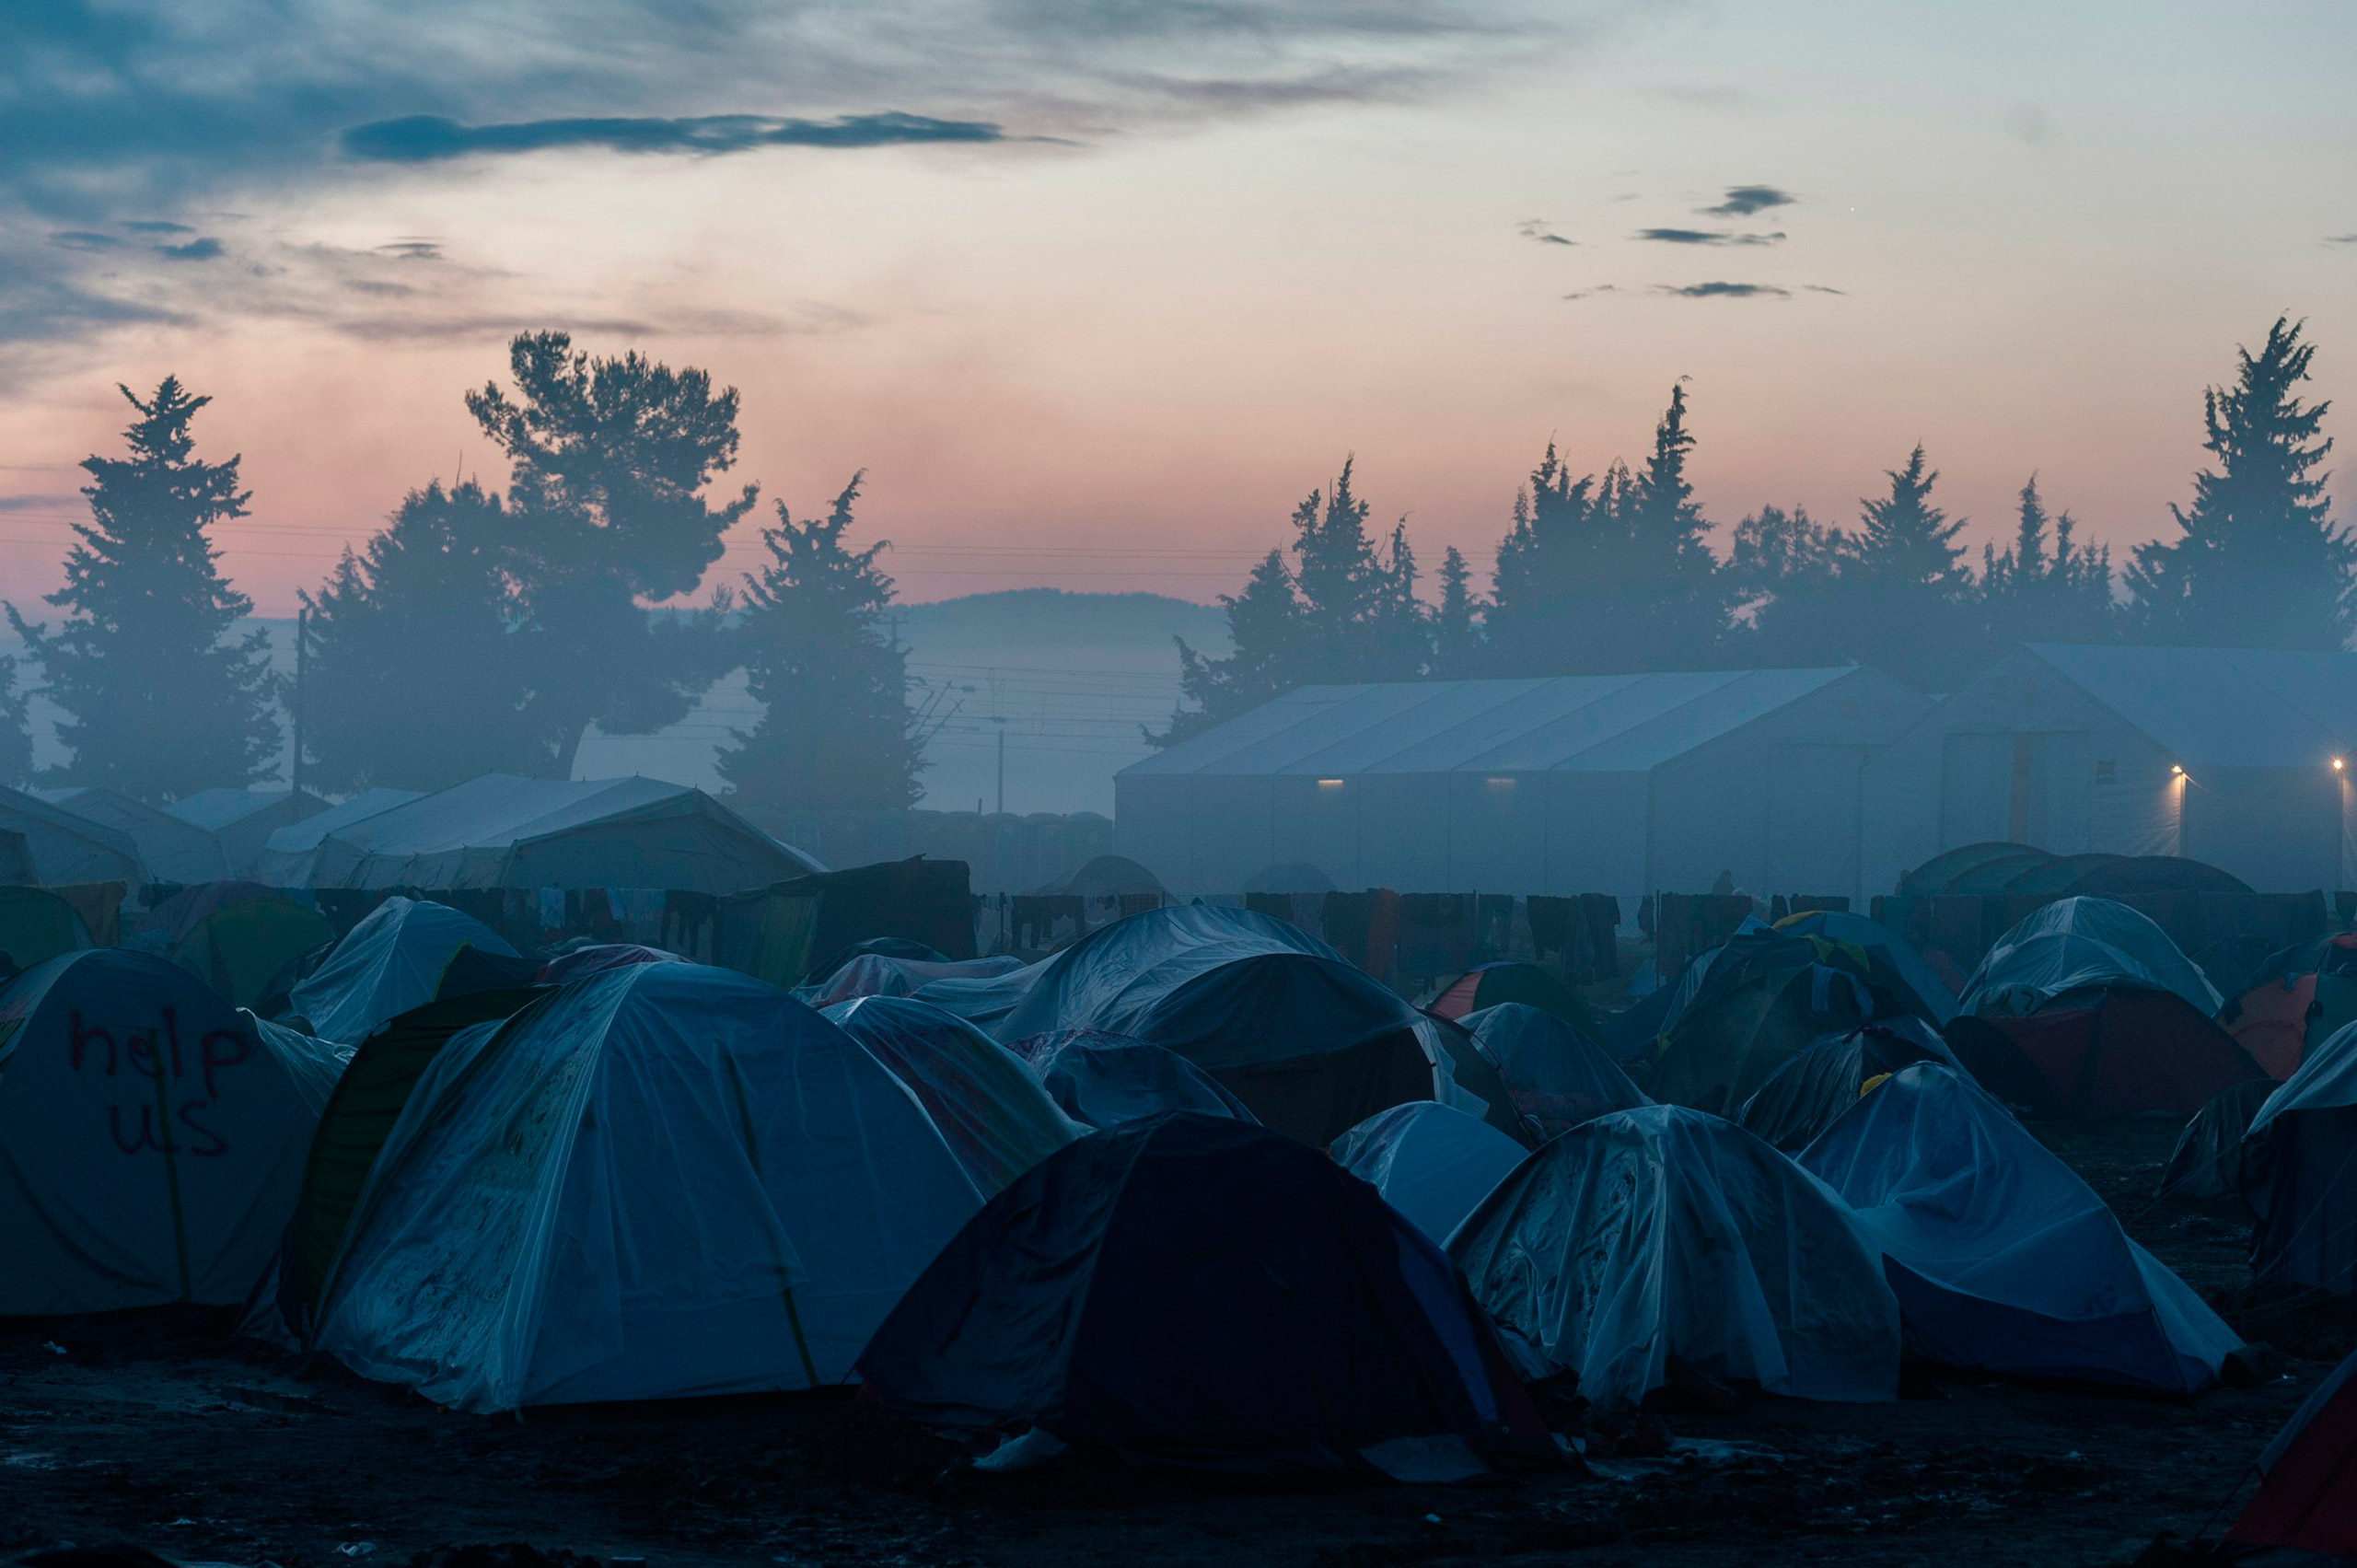 Fog engulfs a makeshift camp for migrants and refugees at the Greek-Macedonian border, near the Greek village of Idomeni, March 11, 2016. Markus Heine—NurPhoto/Corbis